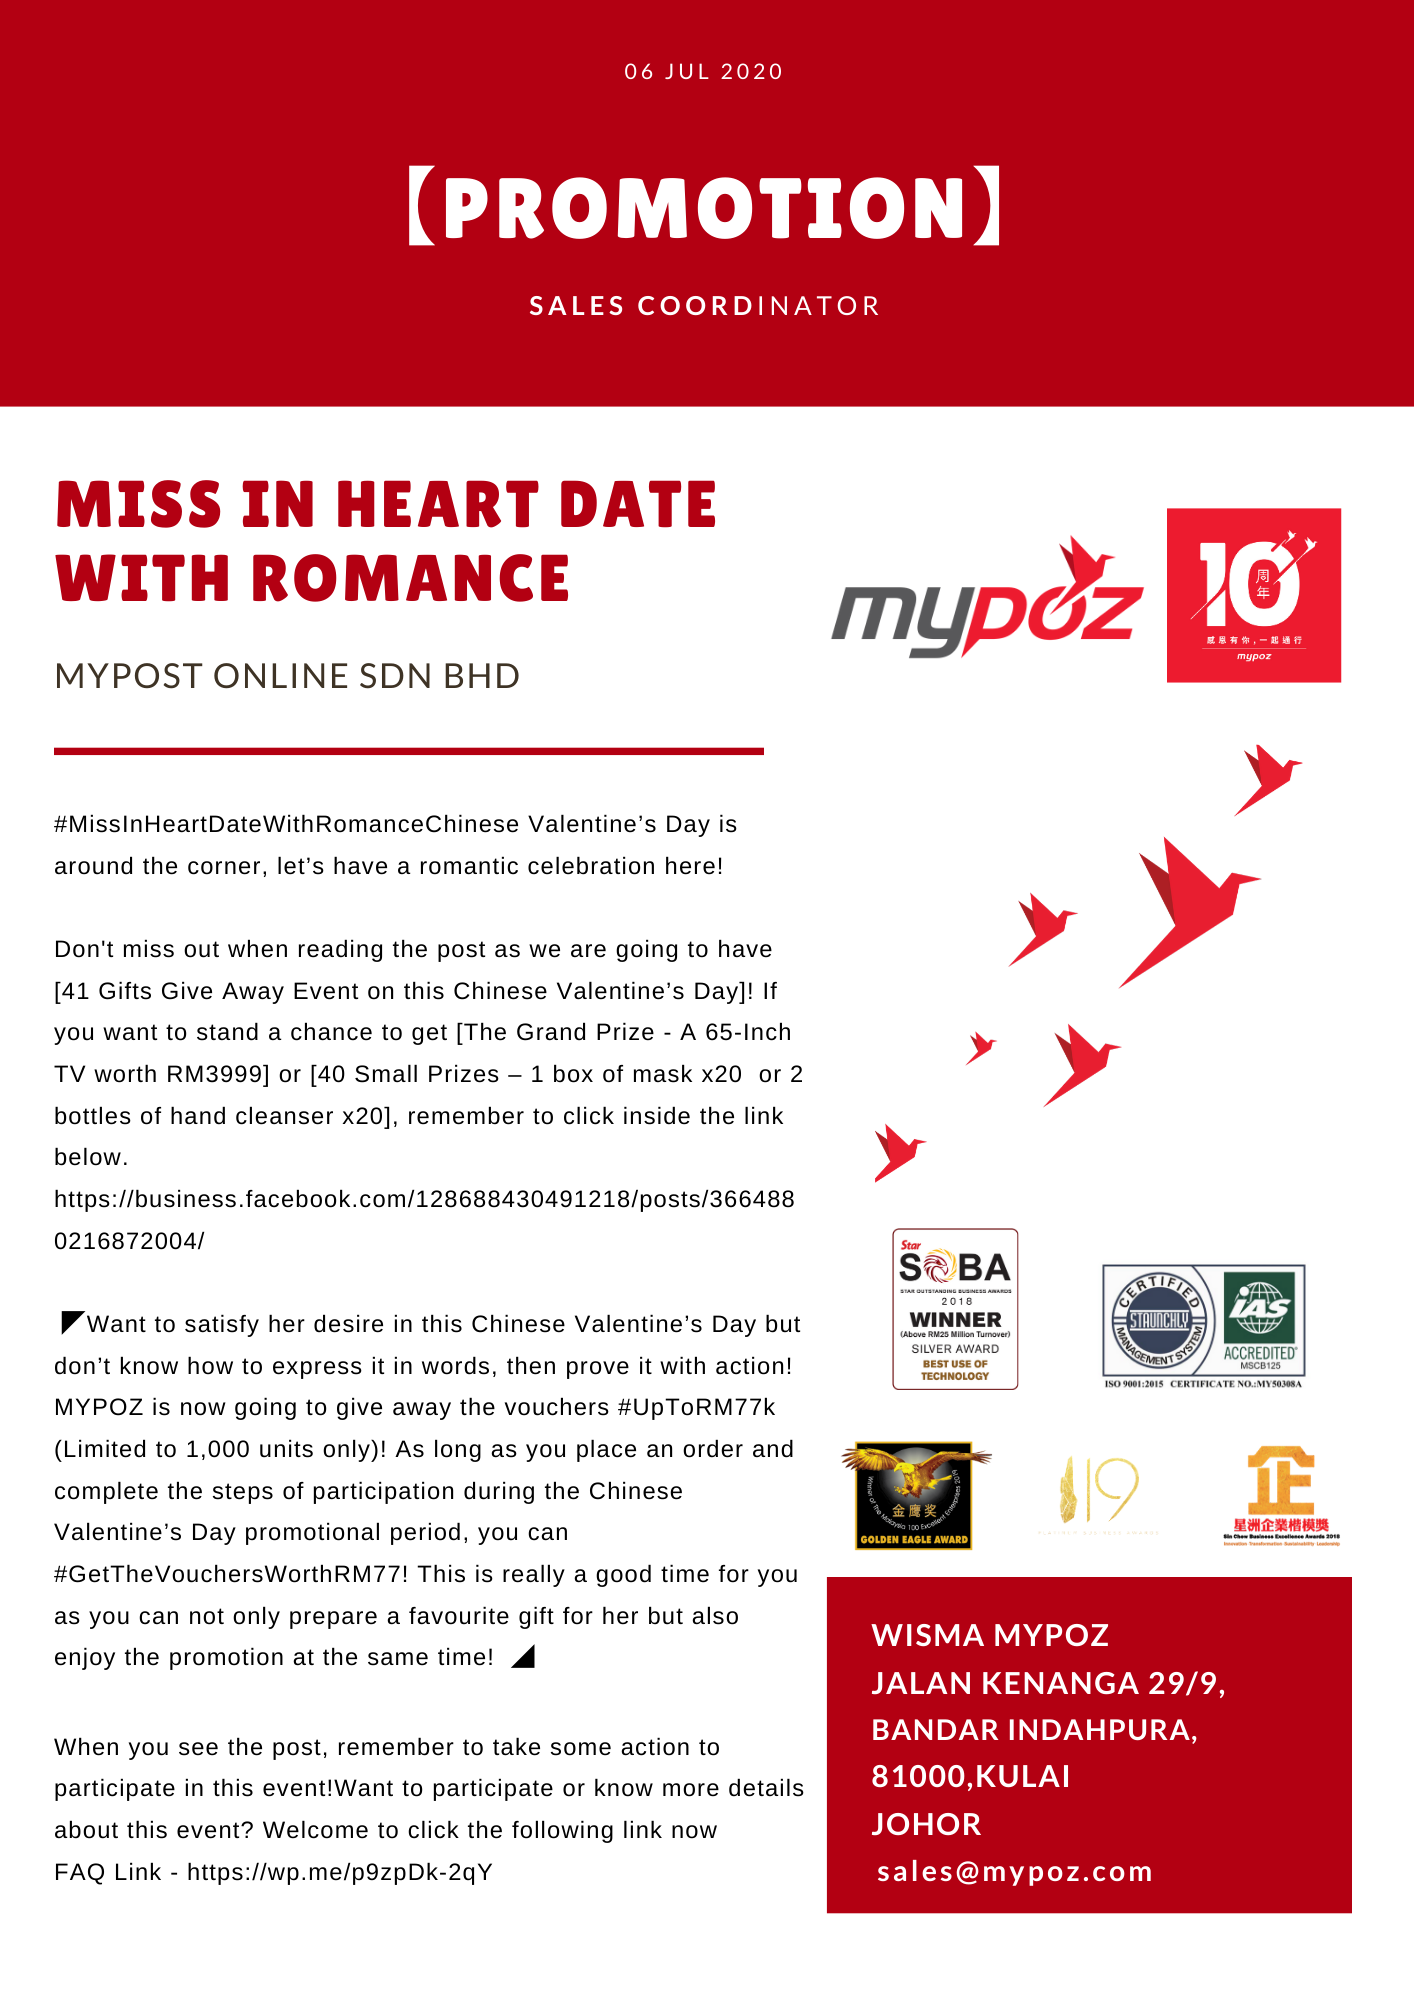 【PROMOTION】Miss In Heart Date With Romance